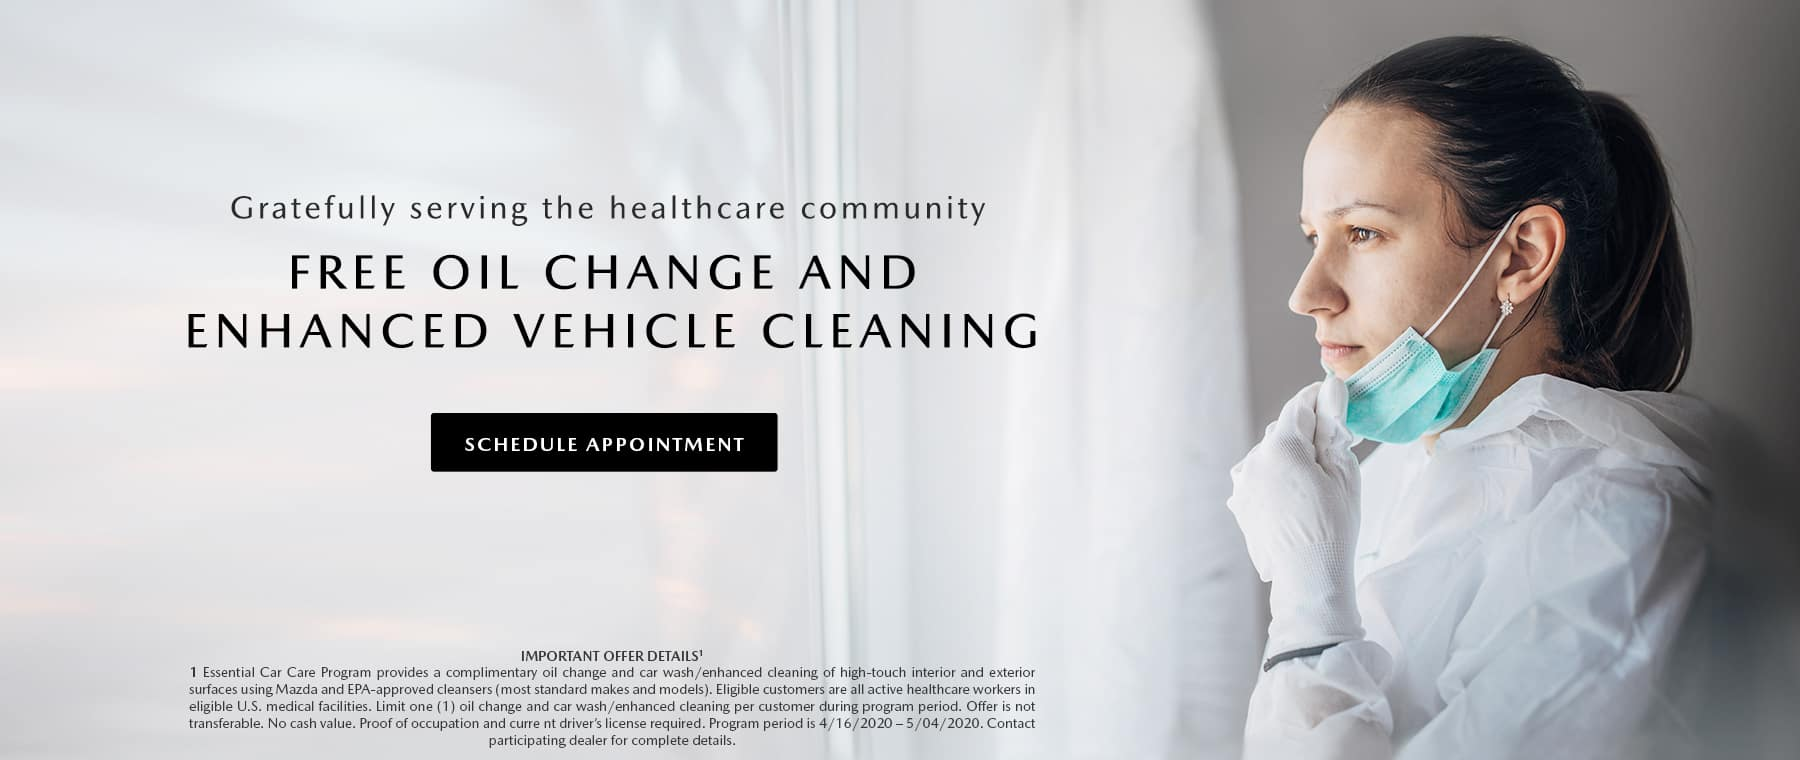 Gratefully service the healthcare community. Free oil change and enhanced vehicle cleaning. IMPORTANT OFFER DETAILS: Essential Car Care Program provides a complimentary oil change and car wash/enhanced cleaning of high-touch interior and exterior surfaces using Mazda and EPA-approved cleansers (most standard makes and models). Eligible customers are all active healthcare workers in eligible U.S. medical facilities. Limit one (1 ) oil change and car wash/enhanced cleaning per customer during program period. Offer is not transferable. No cash value. Proof of occupation and current driver's license required. Program period is 4/16/2020 — 5/04/2020. Contact participating dealer for complete details.